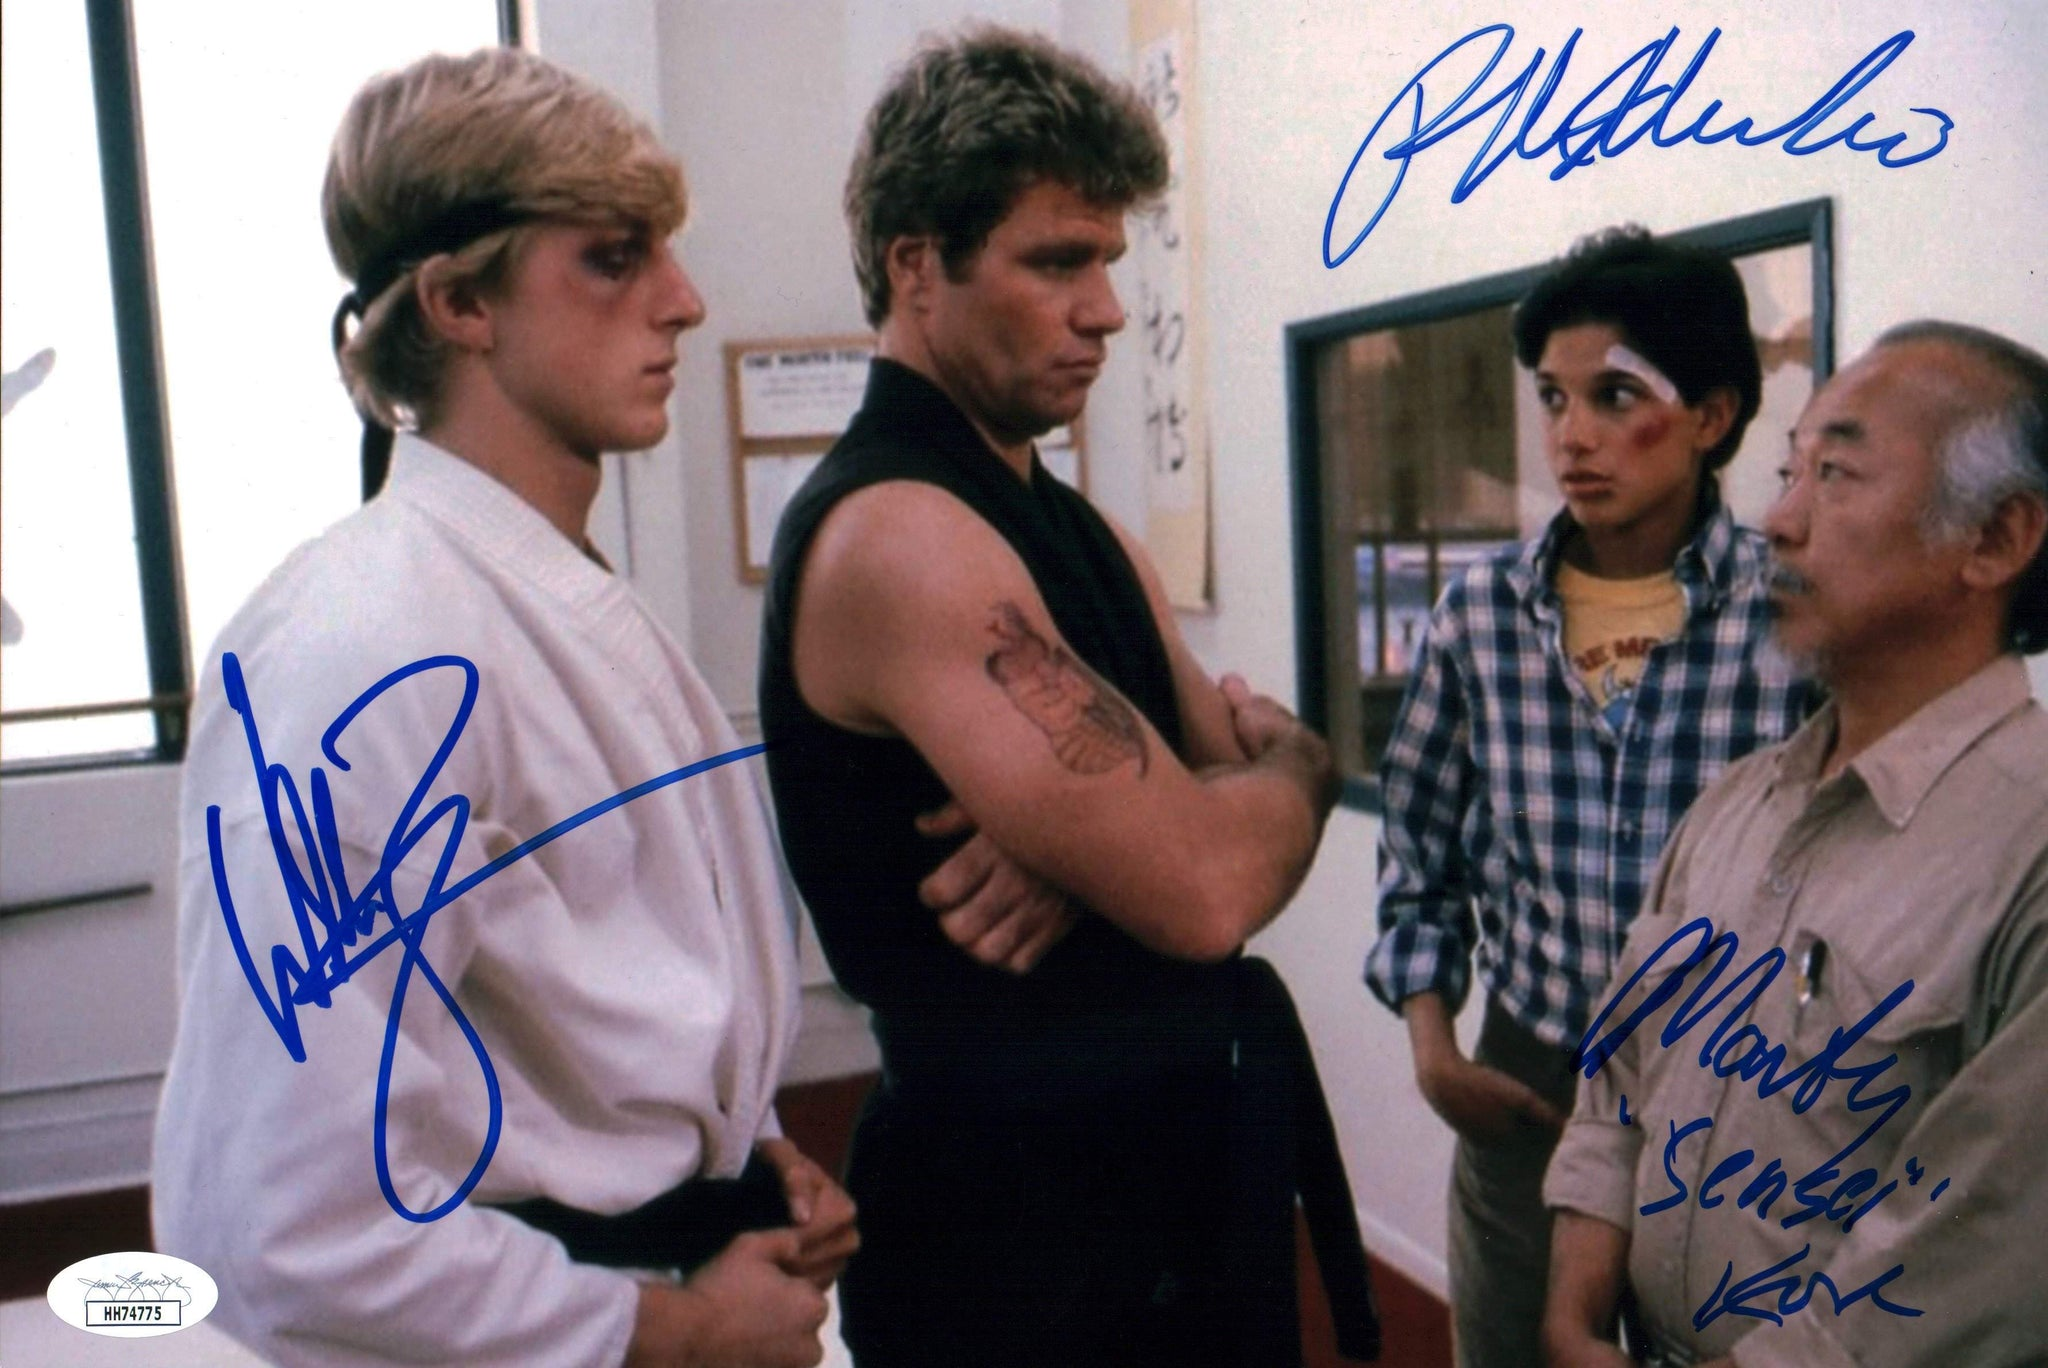 Karate Kid 8x12 Photo Signed Autograph Macchio Zabka Kove JSA Certified COA GalaxyCon